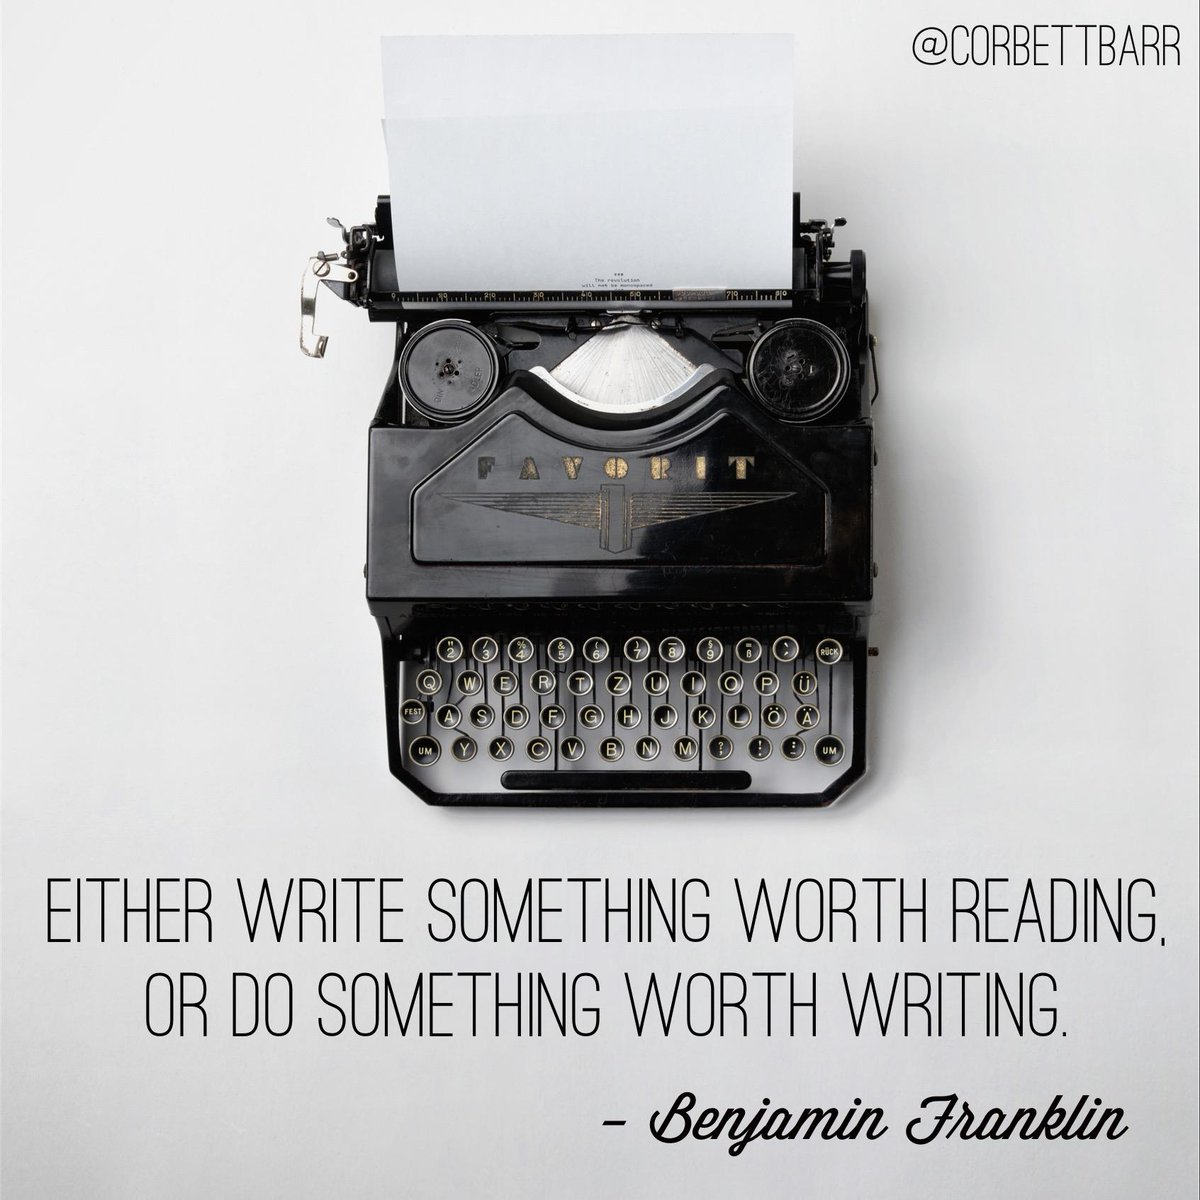 """Either write something worth reading, or do something worth writing."" - Benjamin Franklin http://t.co/zLnIeqhxVz"